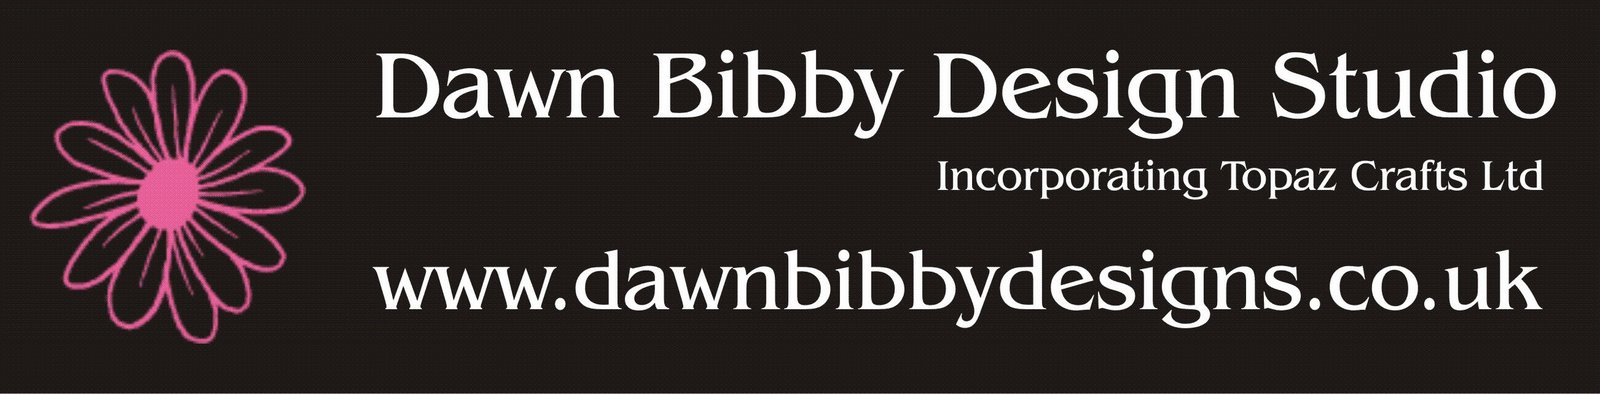 Dawn Bibby Design Studio